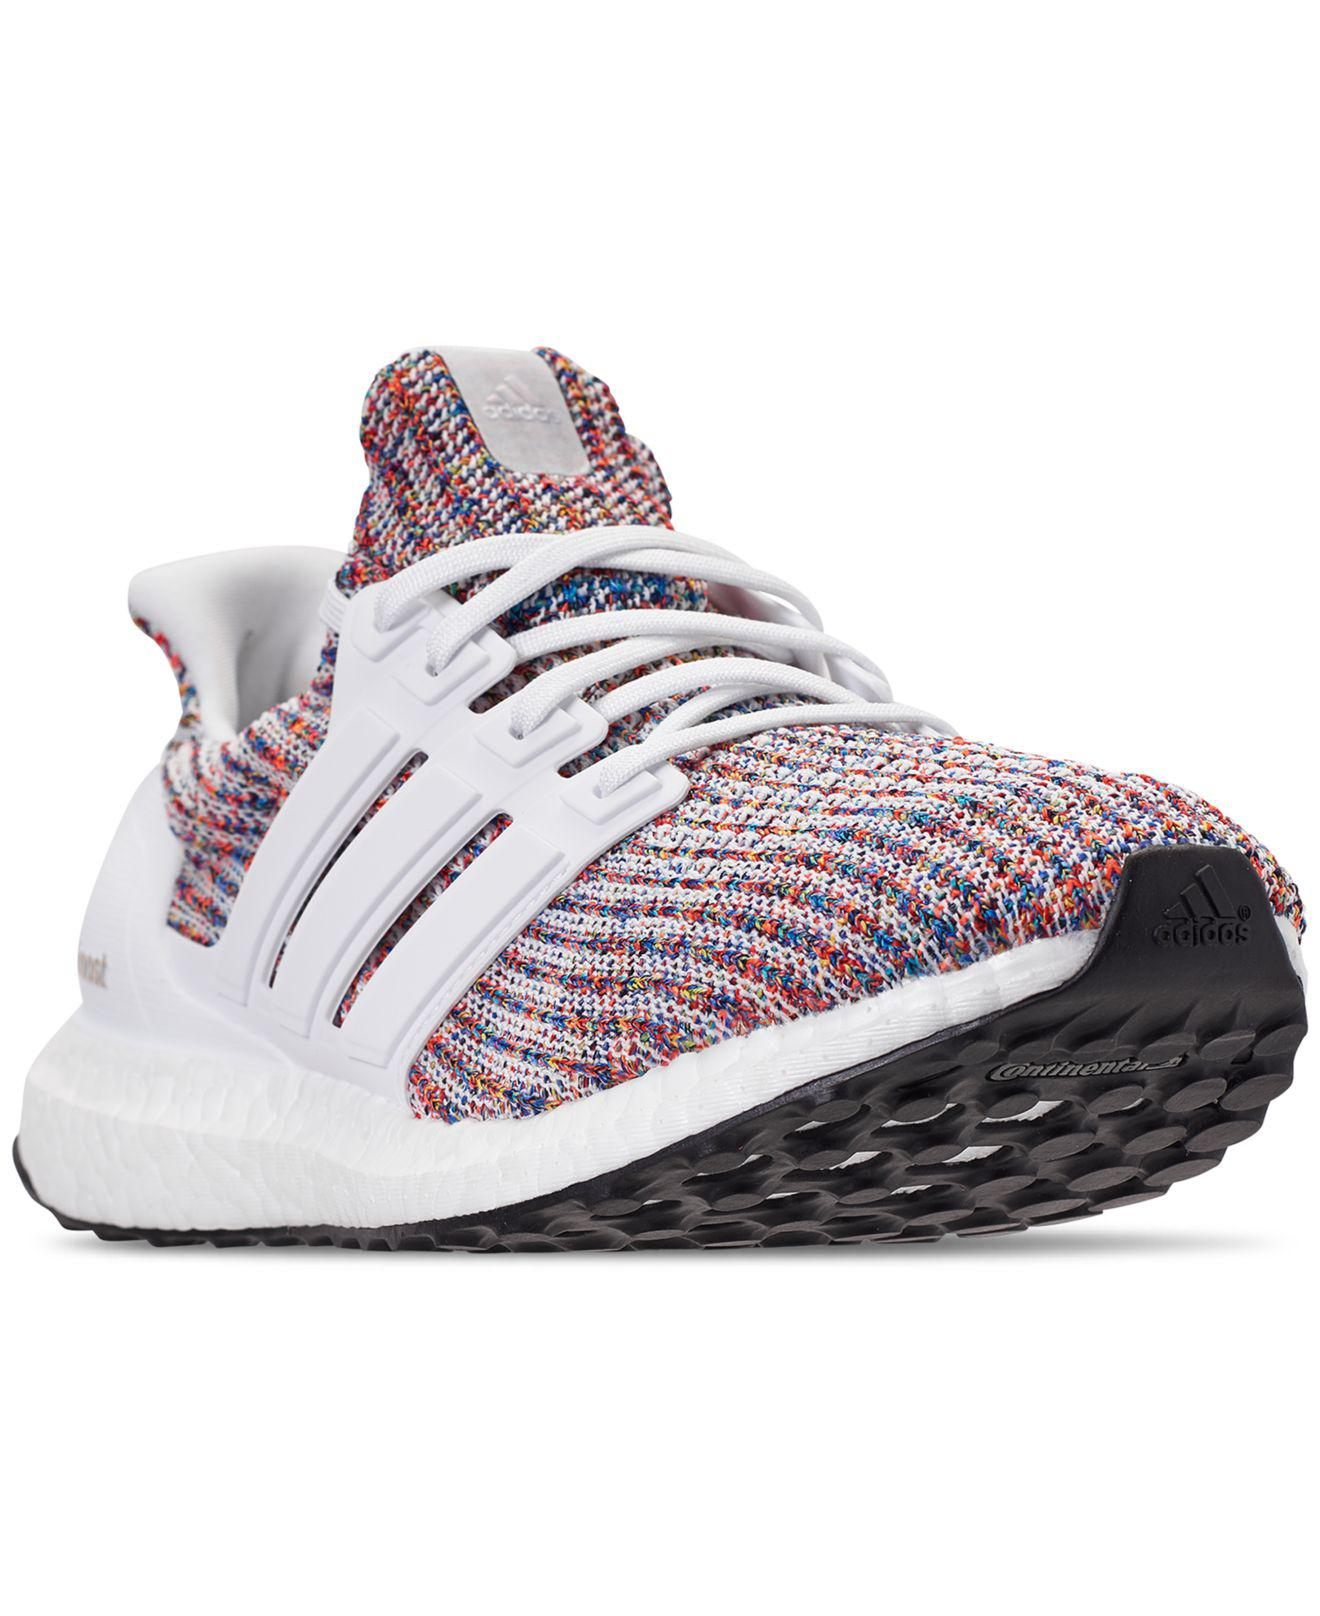 bc333e5dcae60 order adidas ultra boost breast cancer awareness 8649d d85e5  denmark adidas.  mens white ultraboost running sneakers from finish line 3f0a0 dcd62